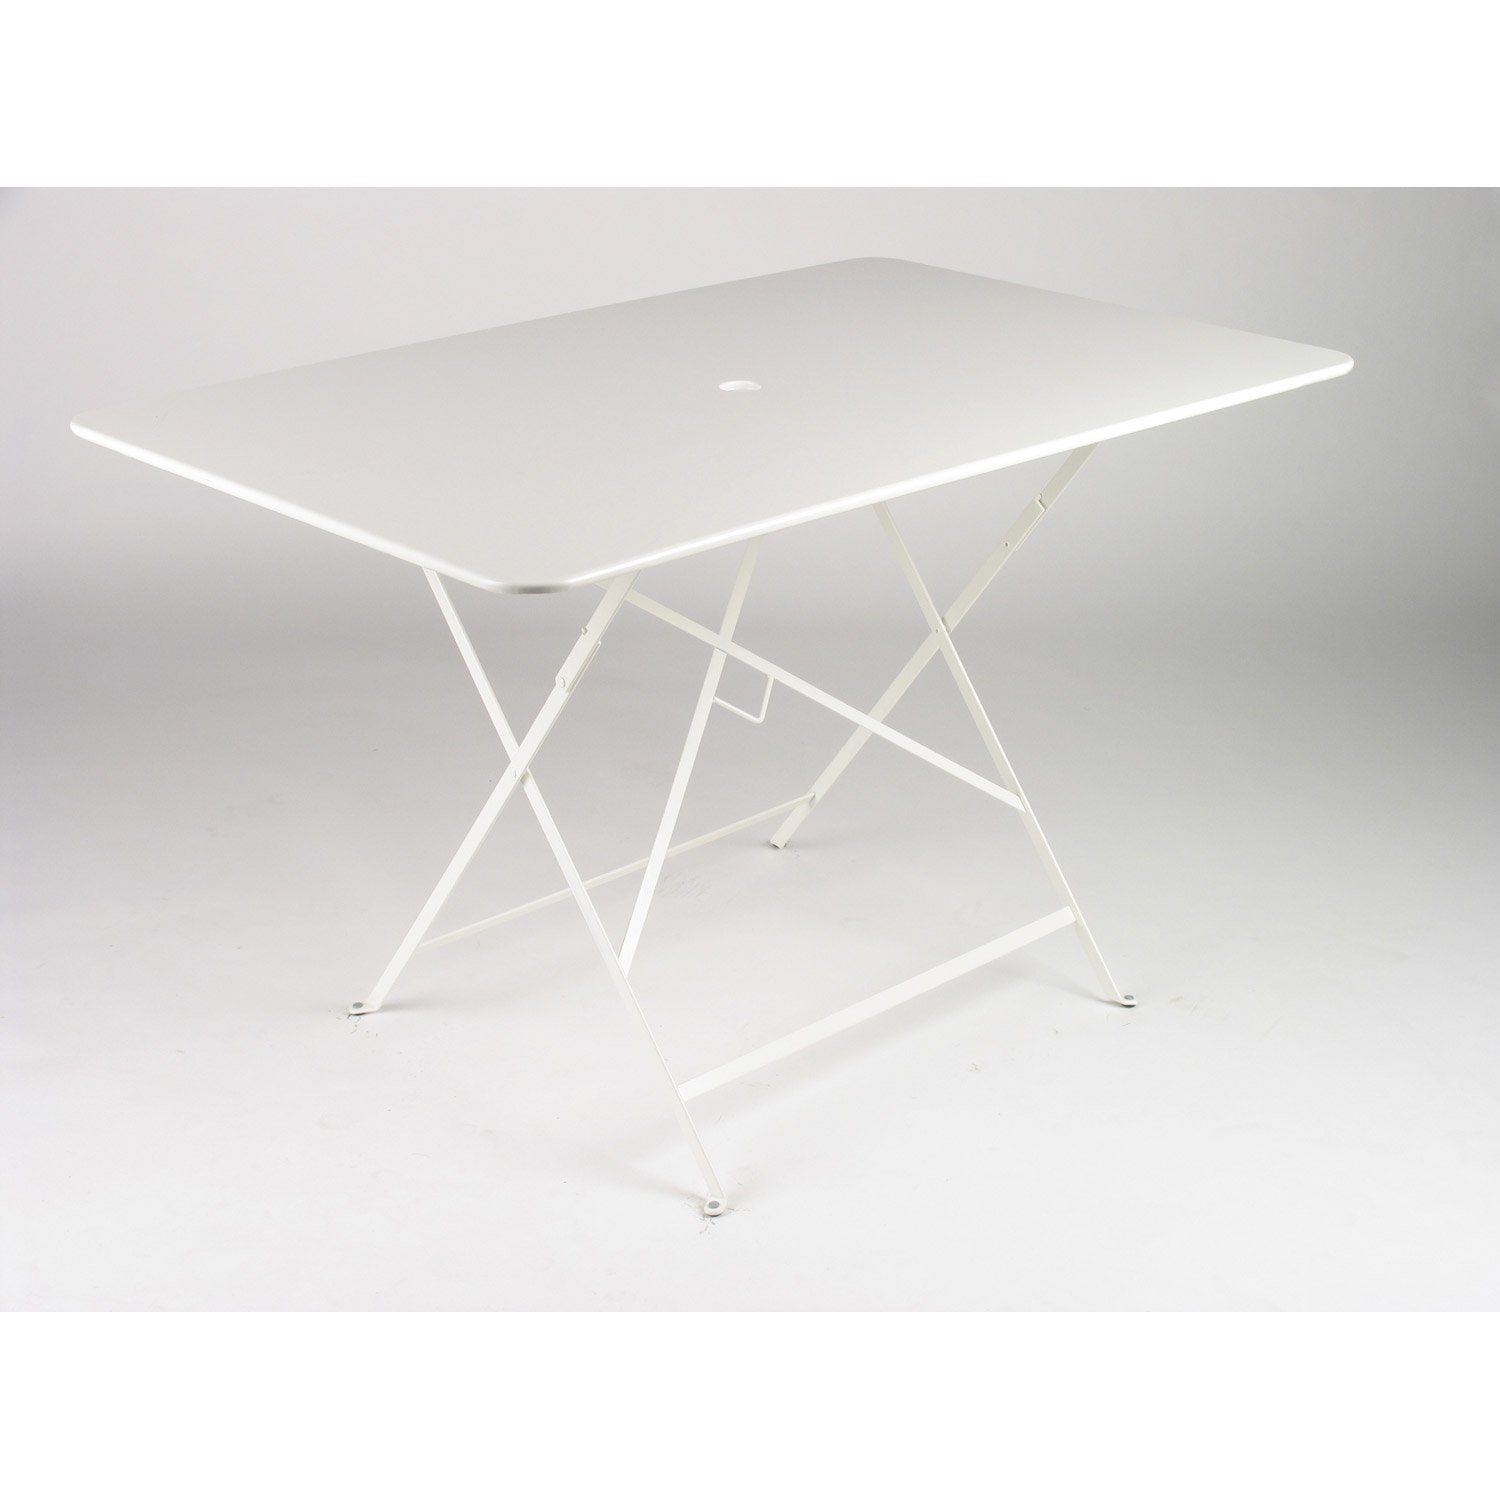 Table de jardin fermob free table de jardin fermob with - Gifi la ciotat ...